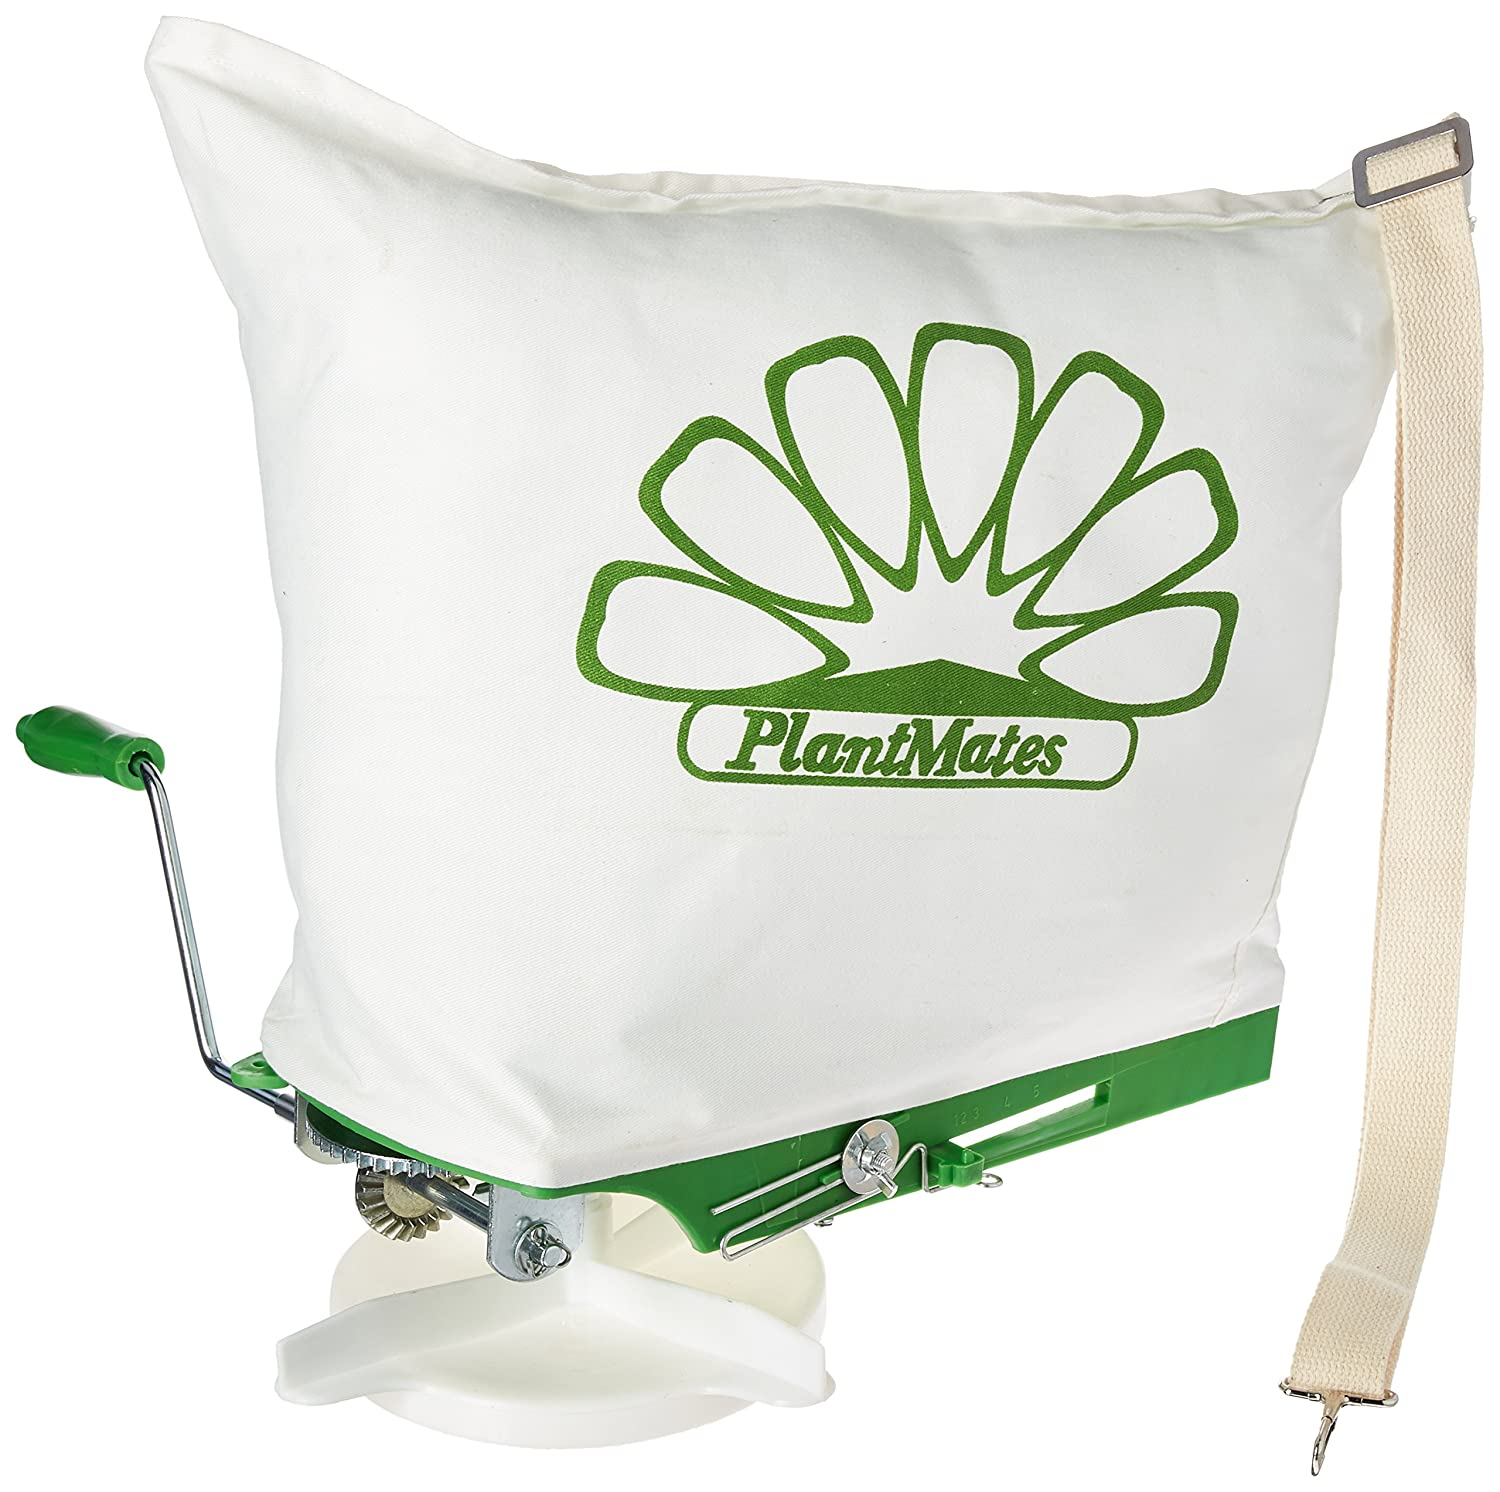 Plantmates 76300 25-Capacity Broadcast Spreader With Canvas Bag Plant Mates